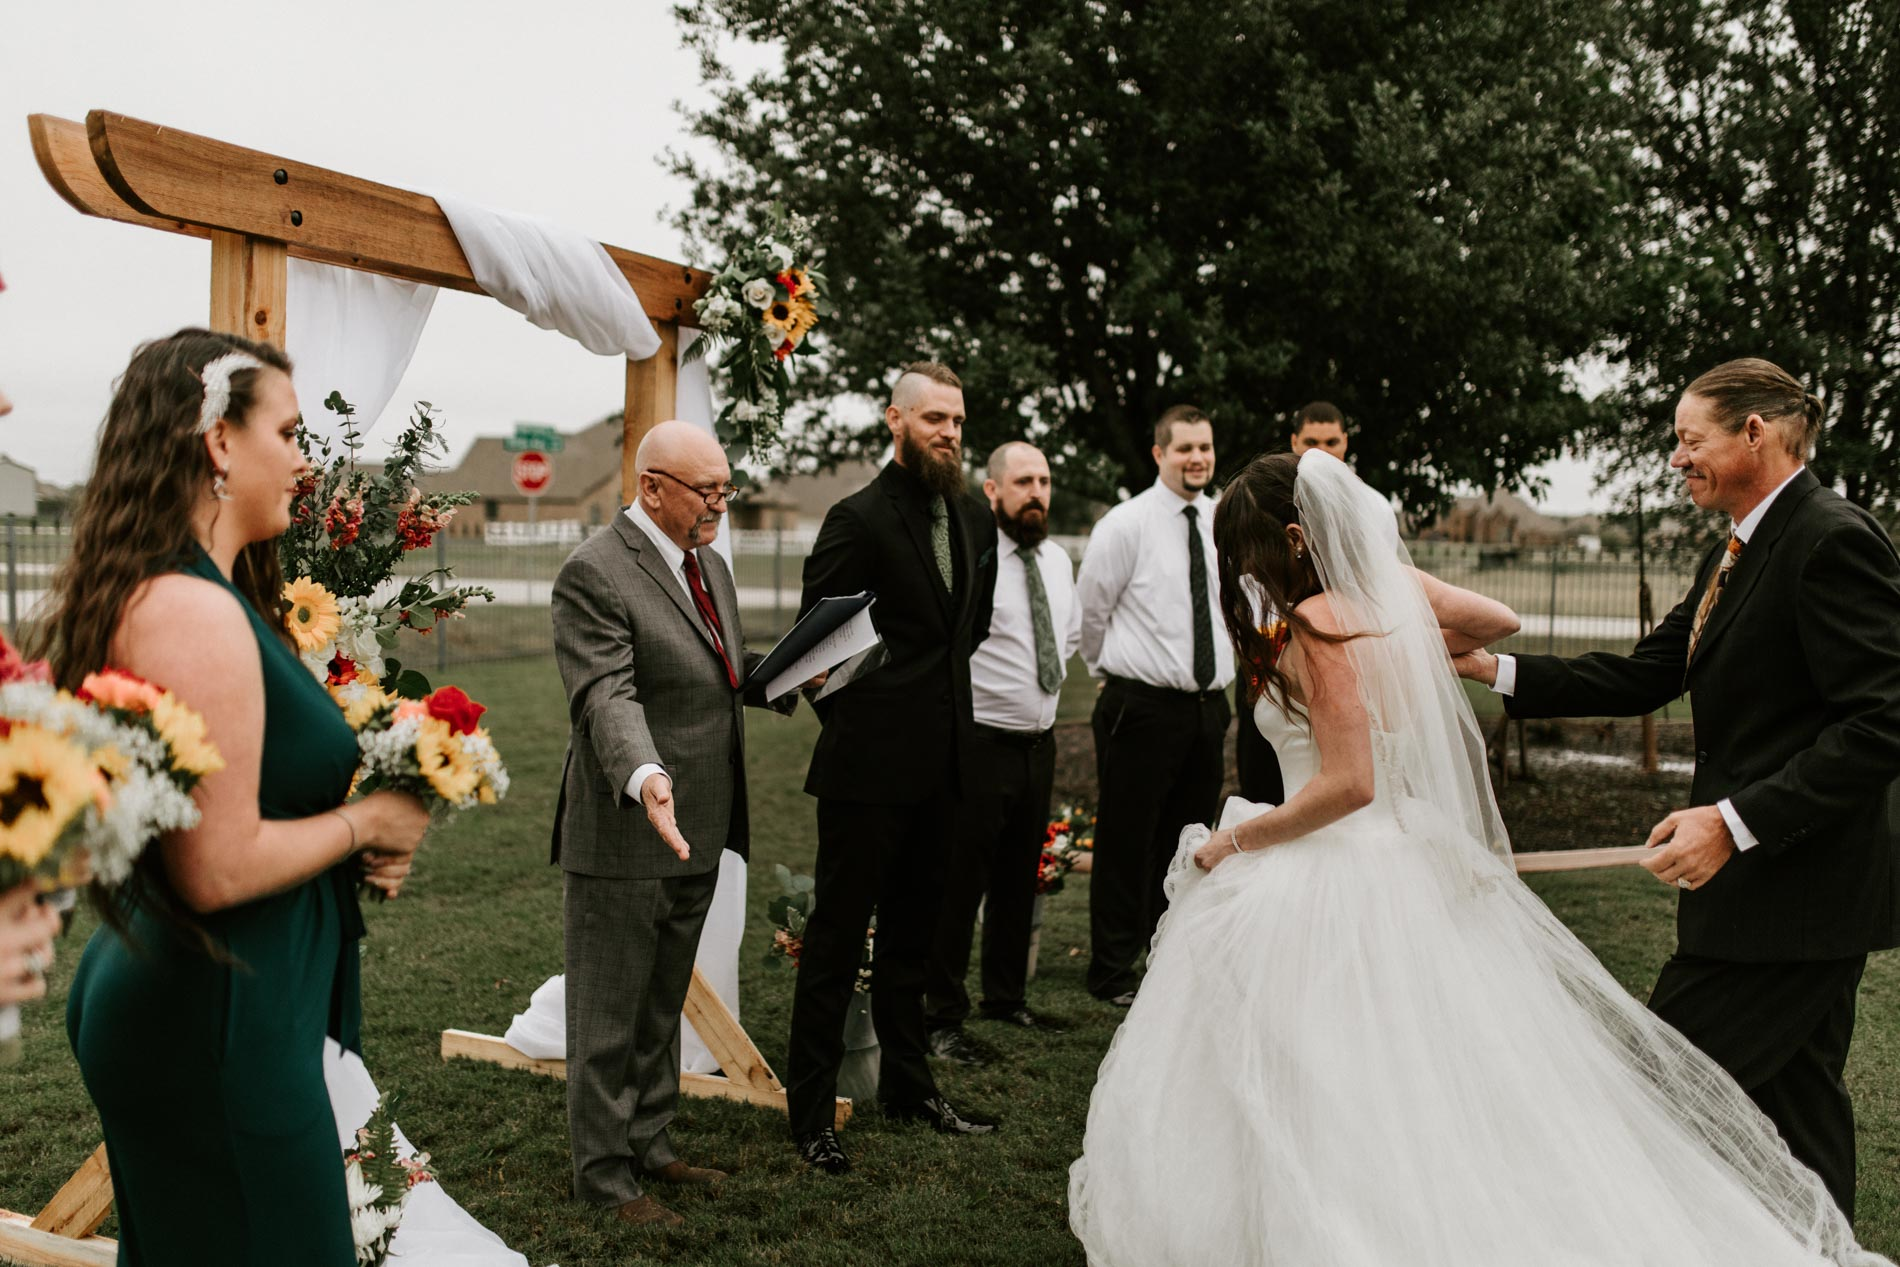 father giving daughter away for her wedding day